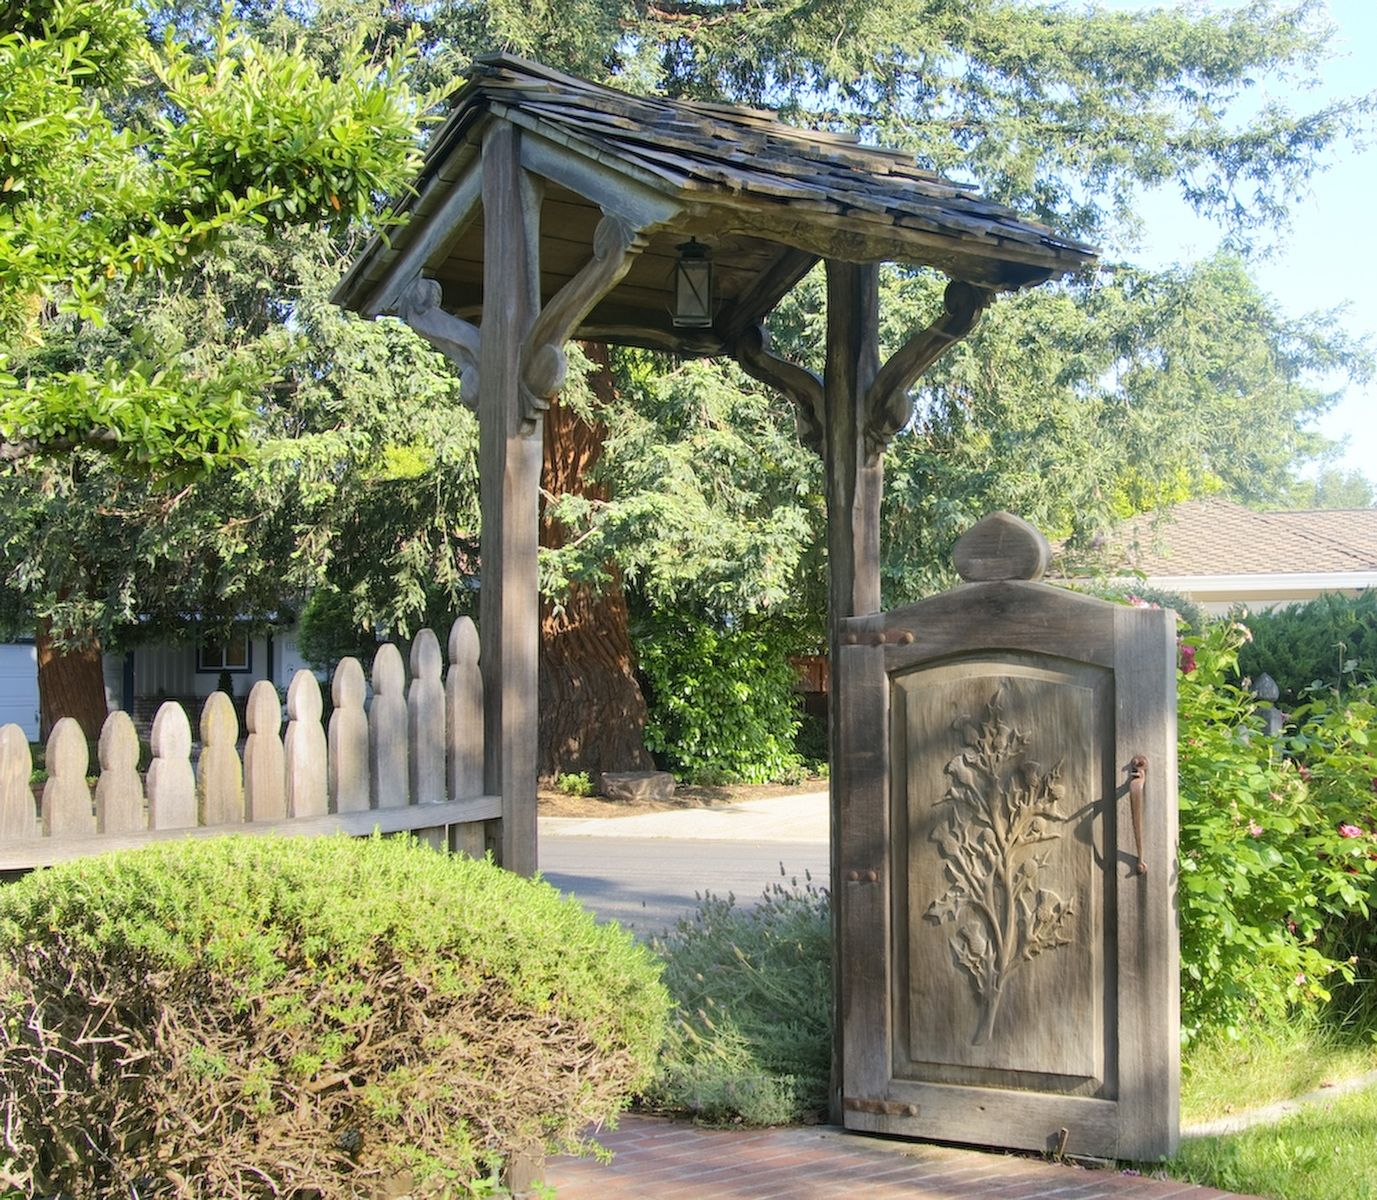 Fence Gate Design Ideas awesome and best fence design ideas with wooden fence design ideas for decorating your home exterior modern wrought woodan gate designs Hand Carved Gate And Fence